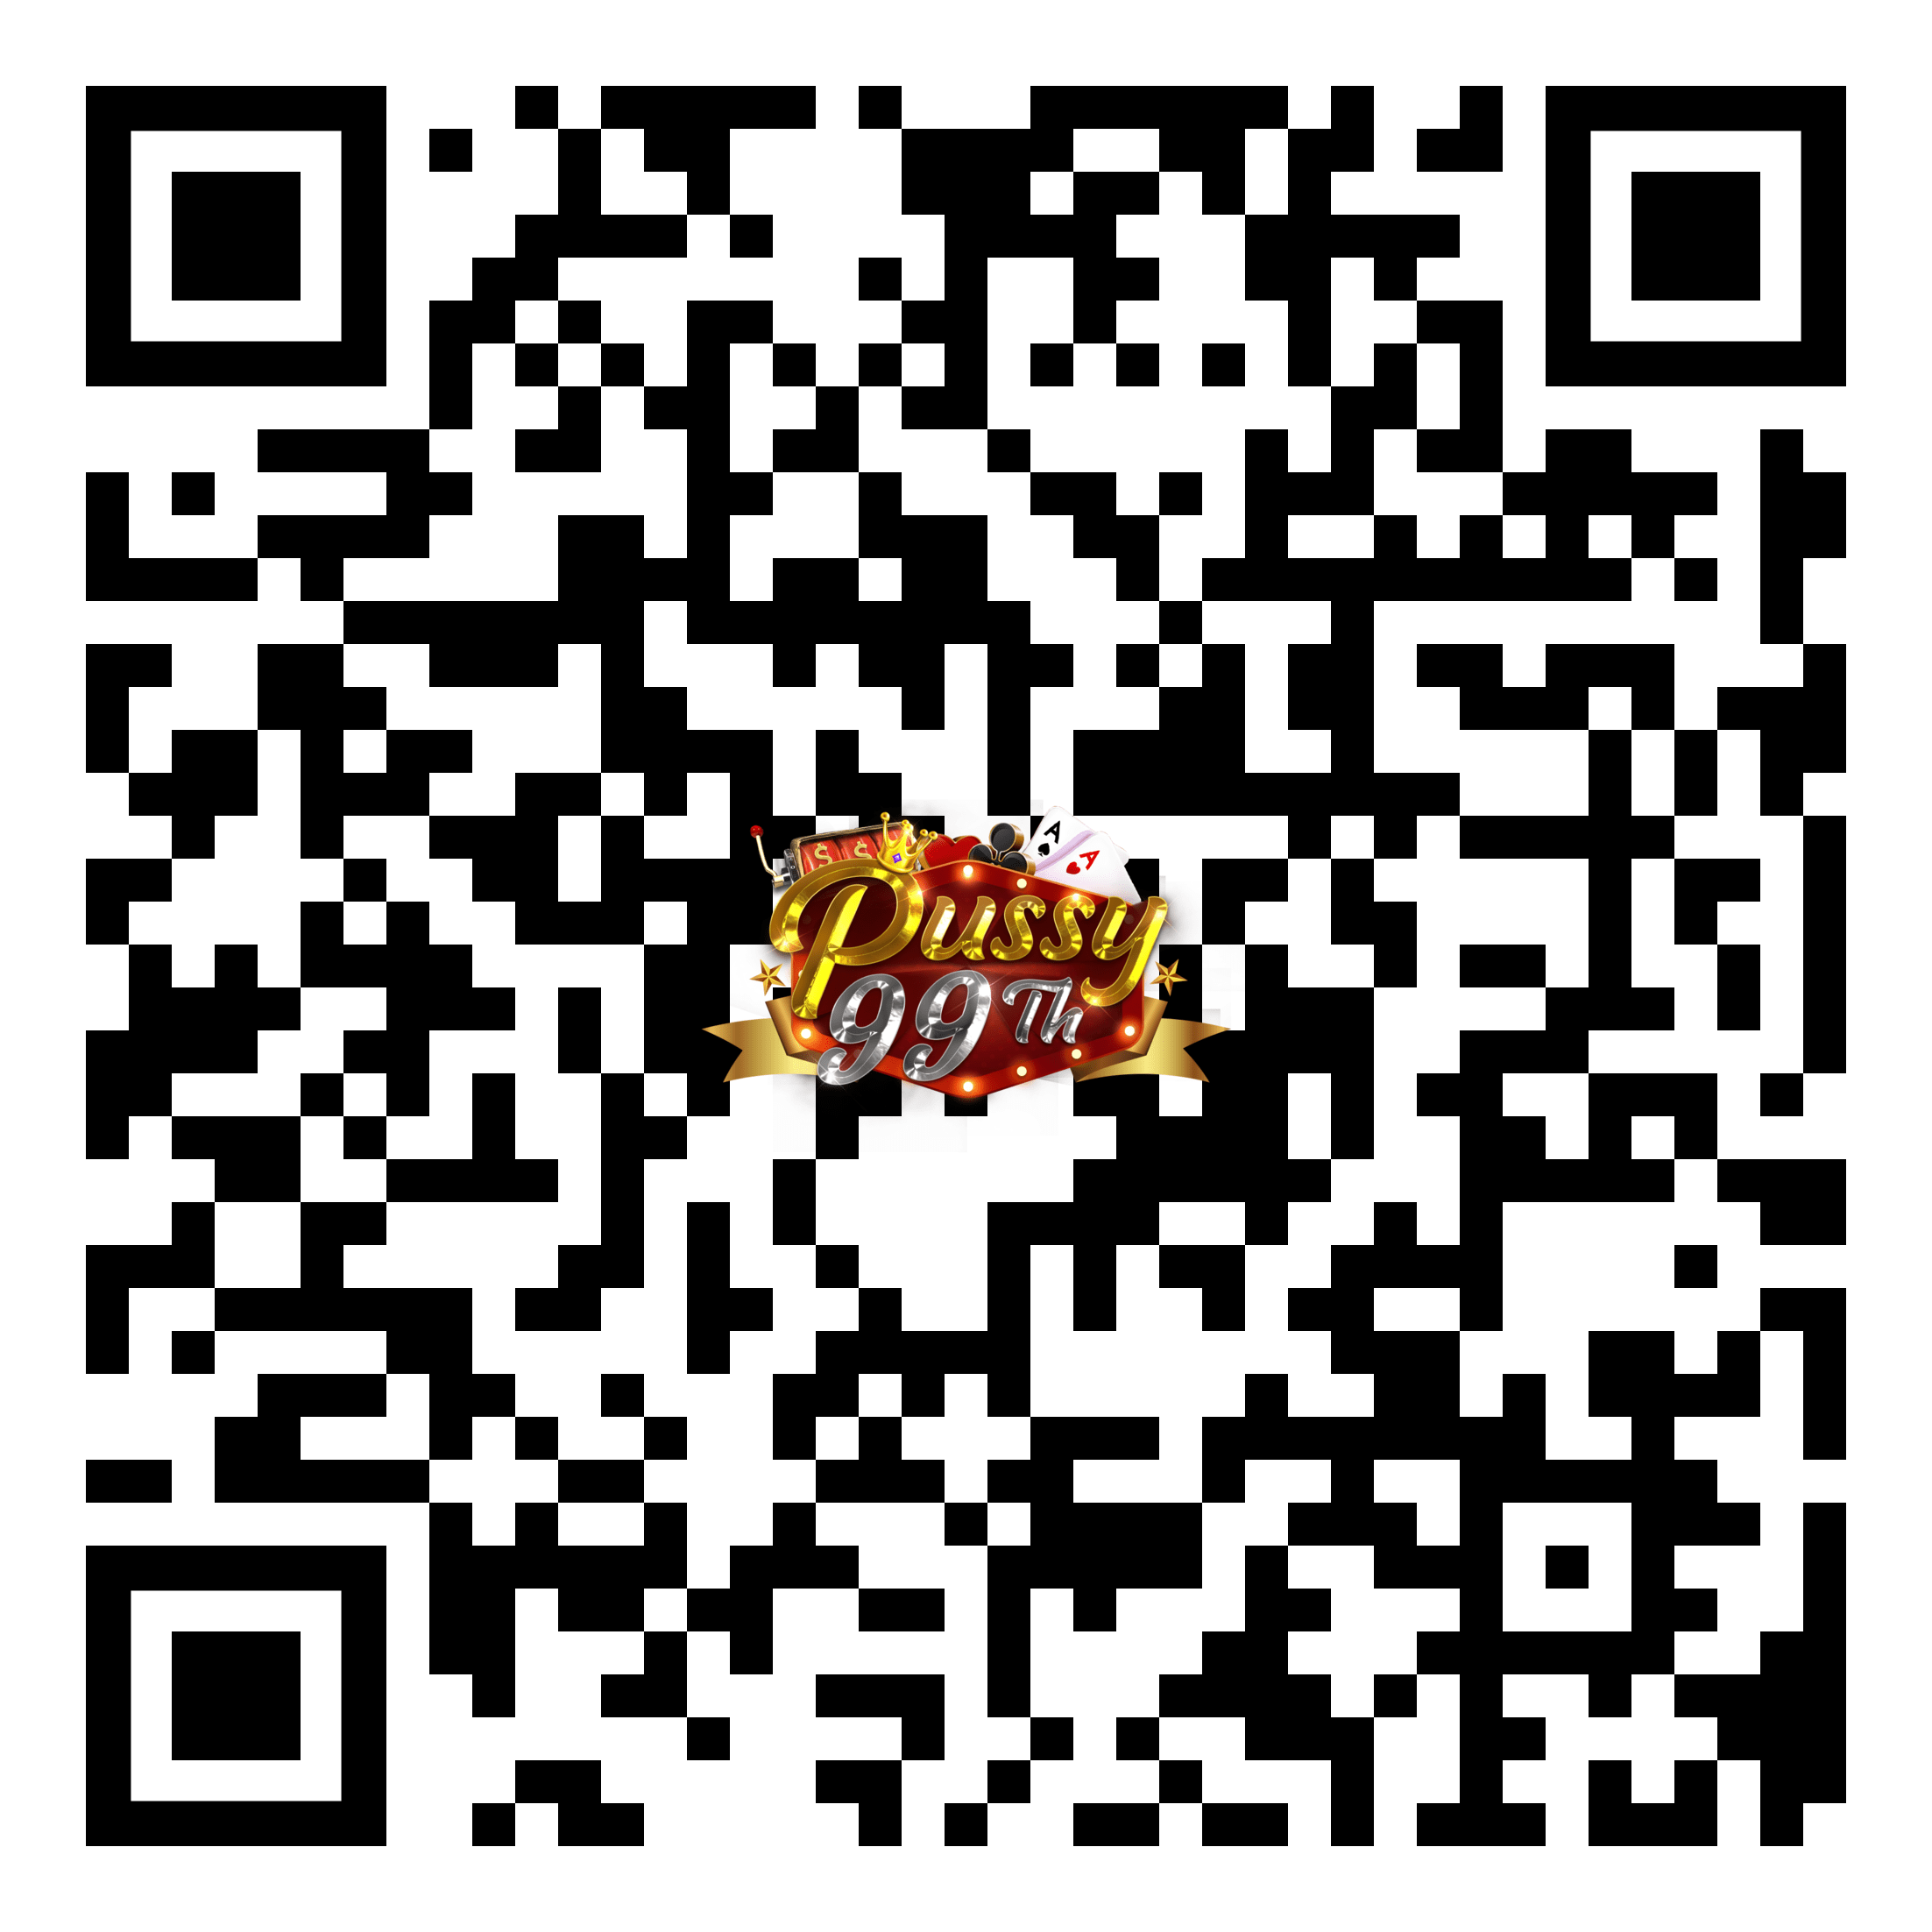 pussy888 ios download qr